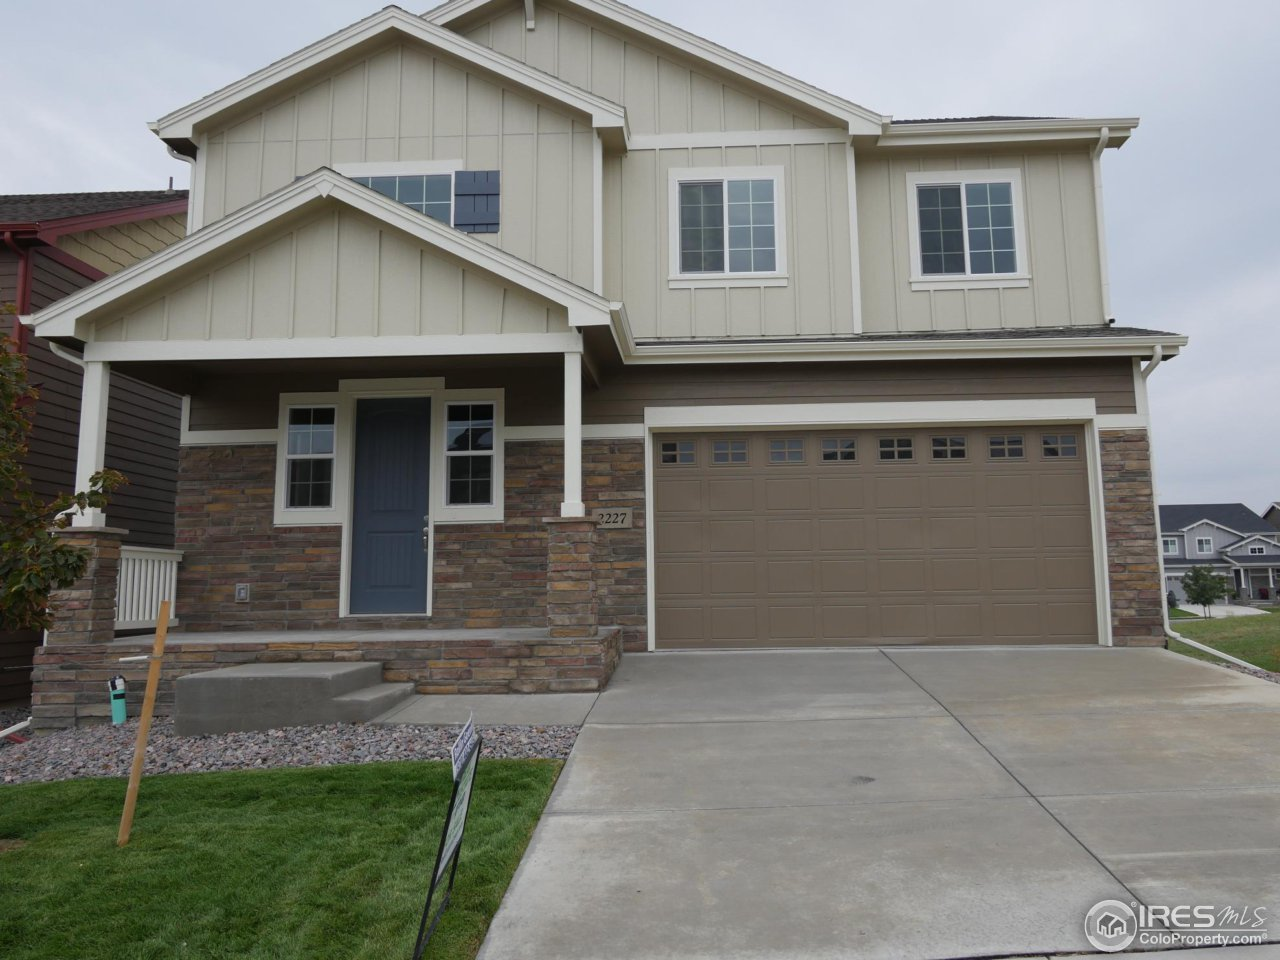 2227 Sherwood Forest Ct, Fort Collins CO 80524